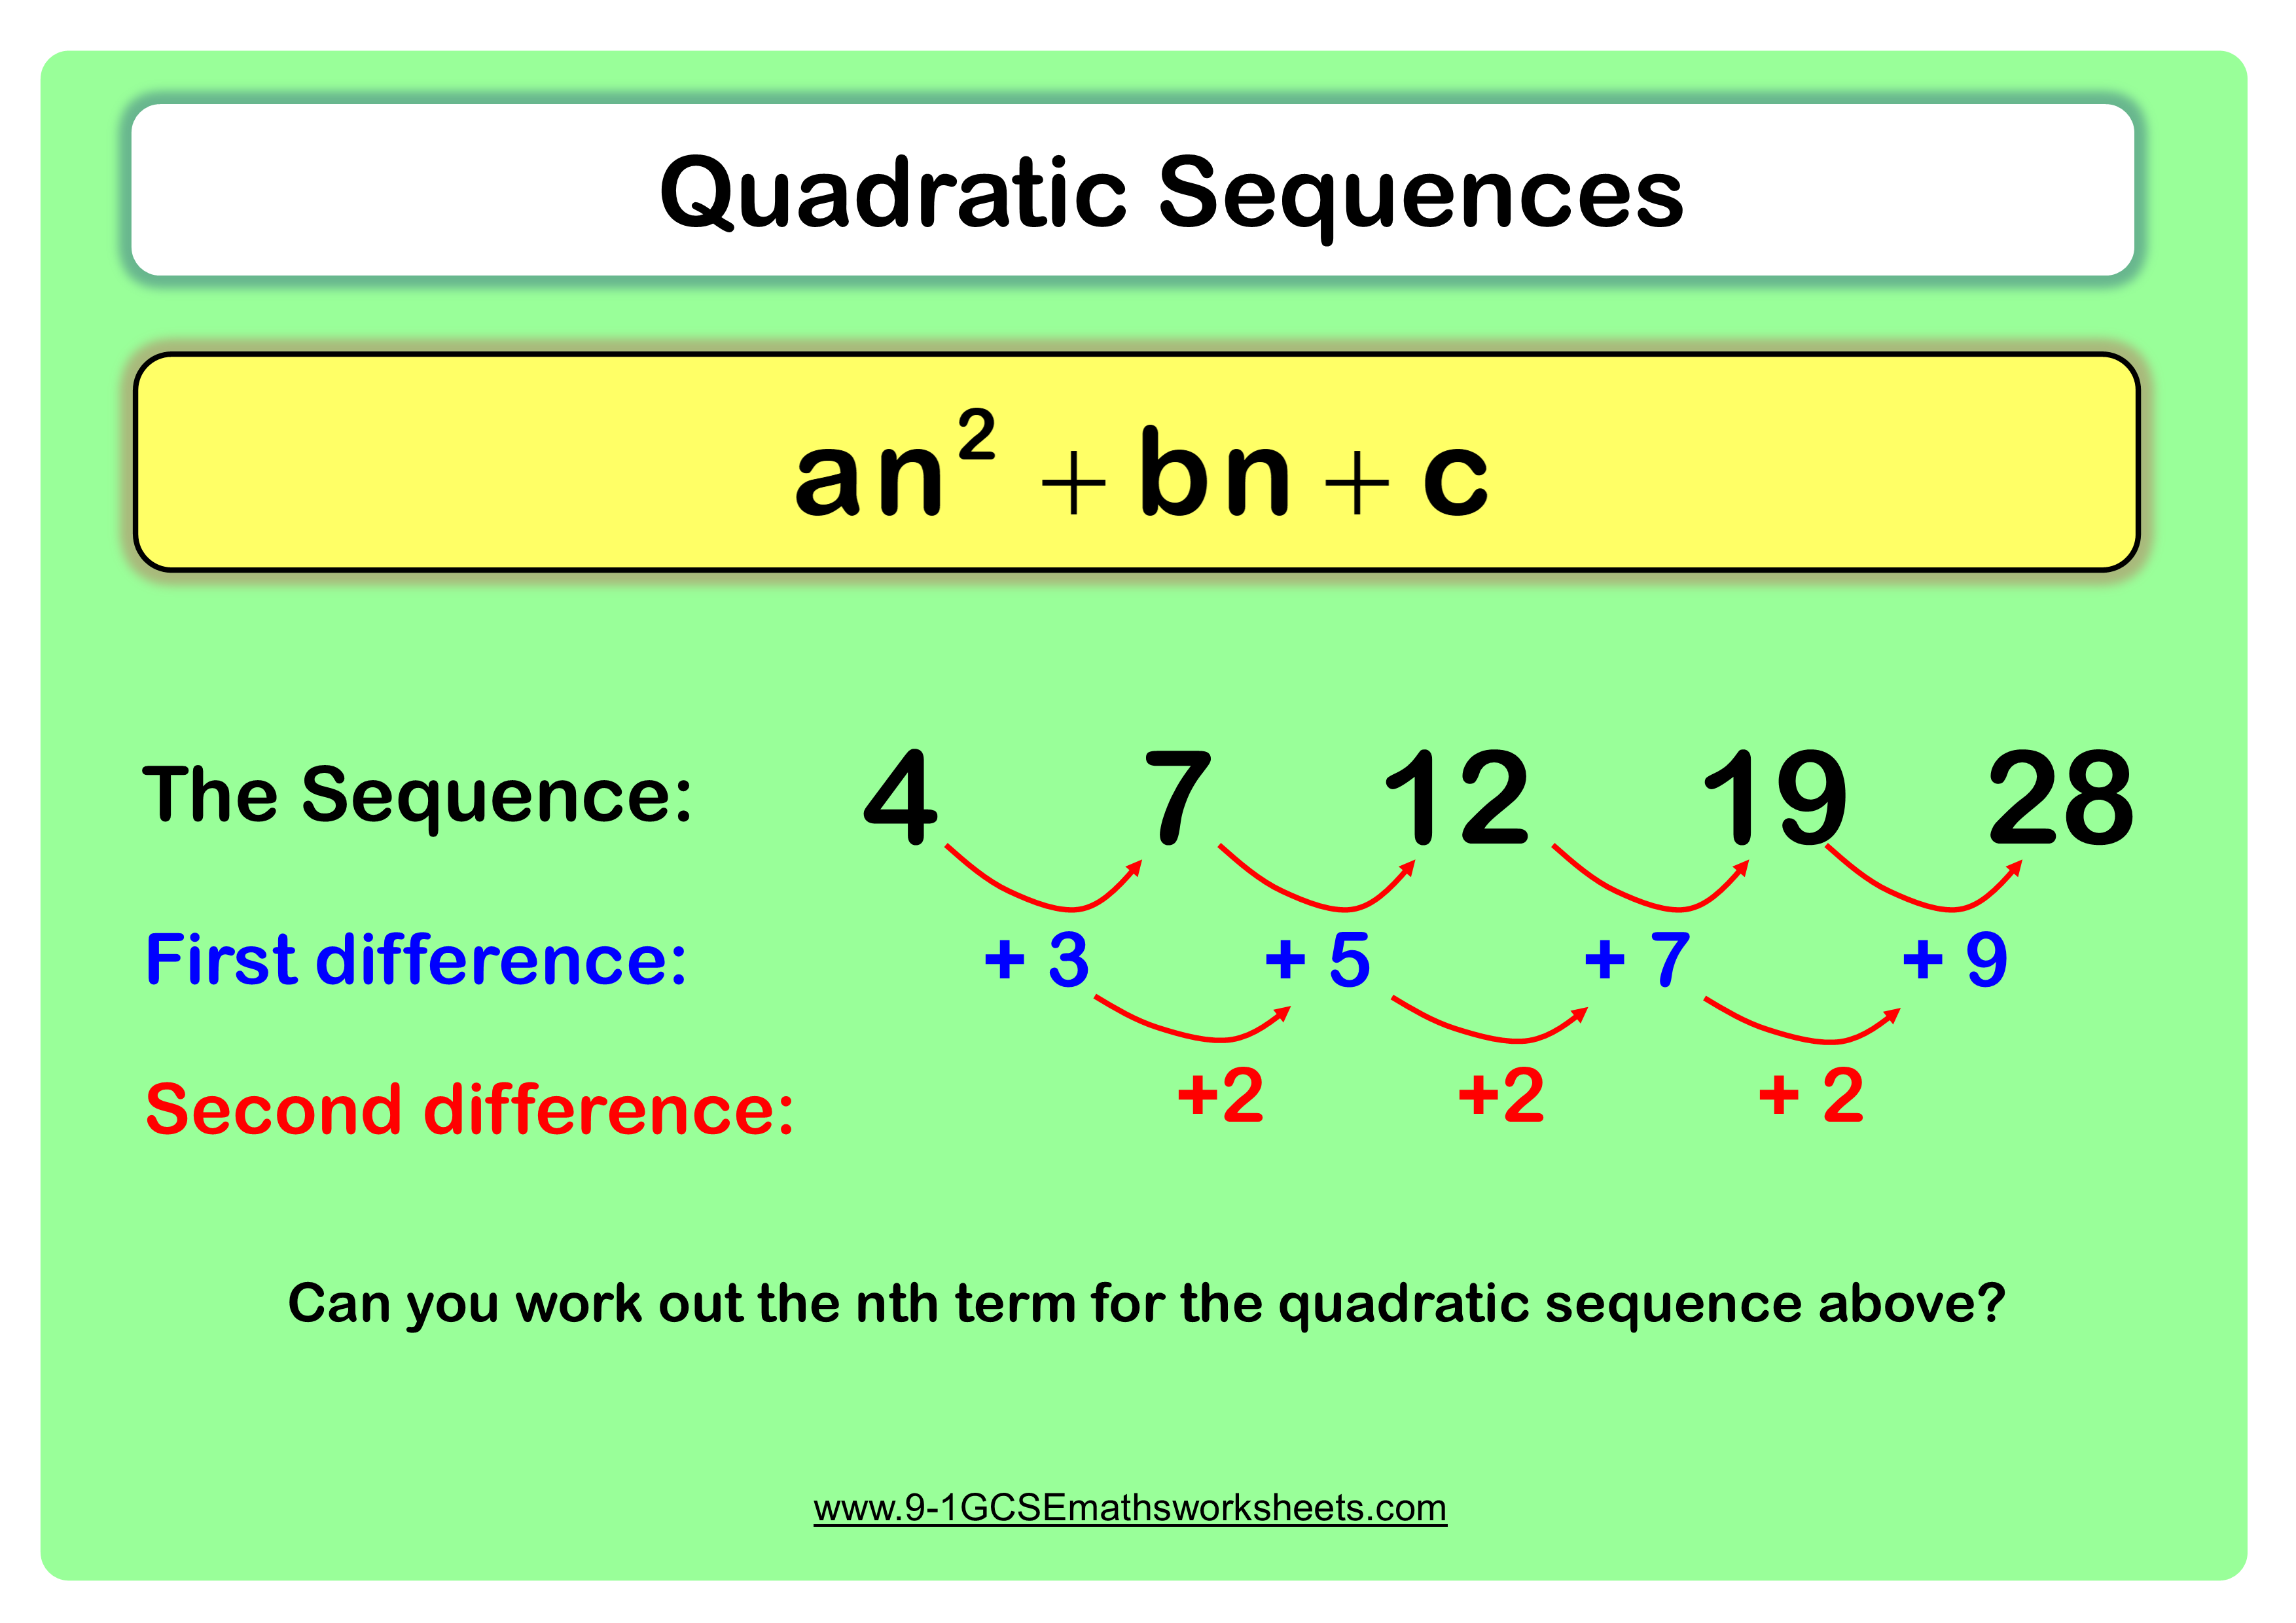 Quadratic Sequences Example | Sequence examples, Math ...